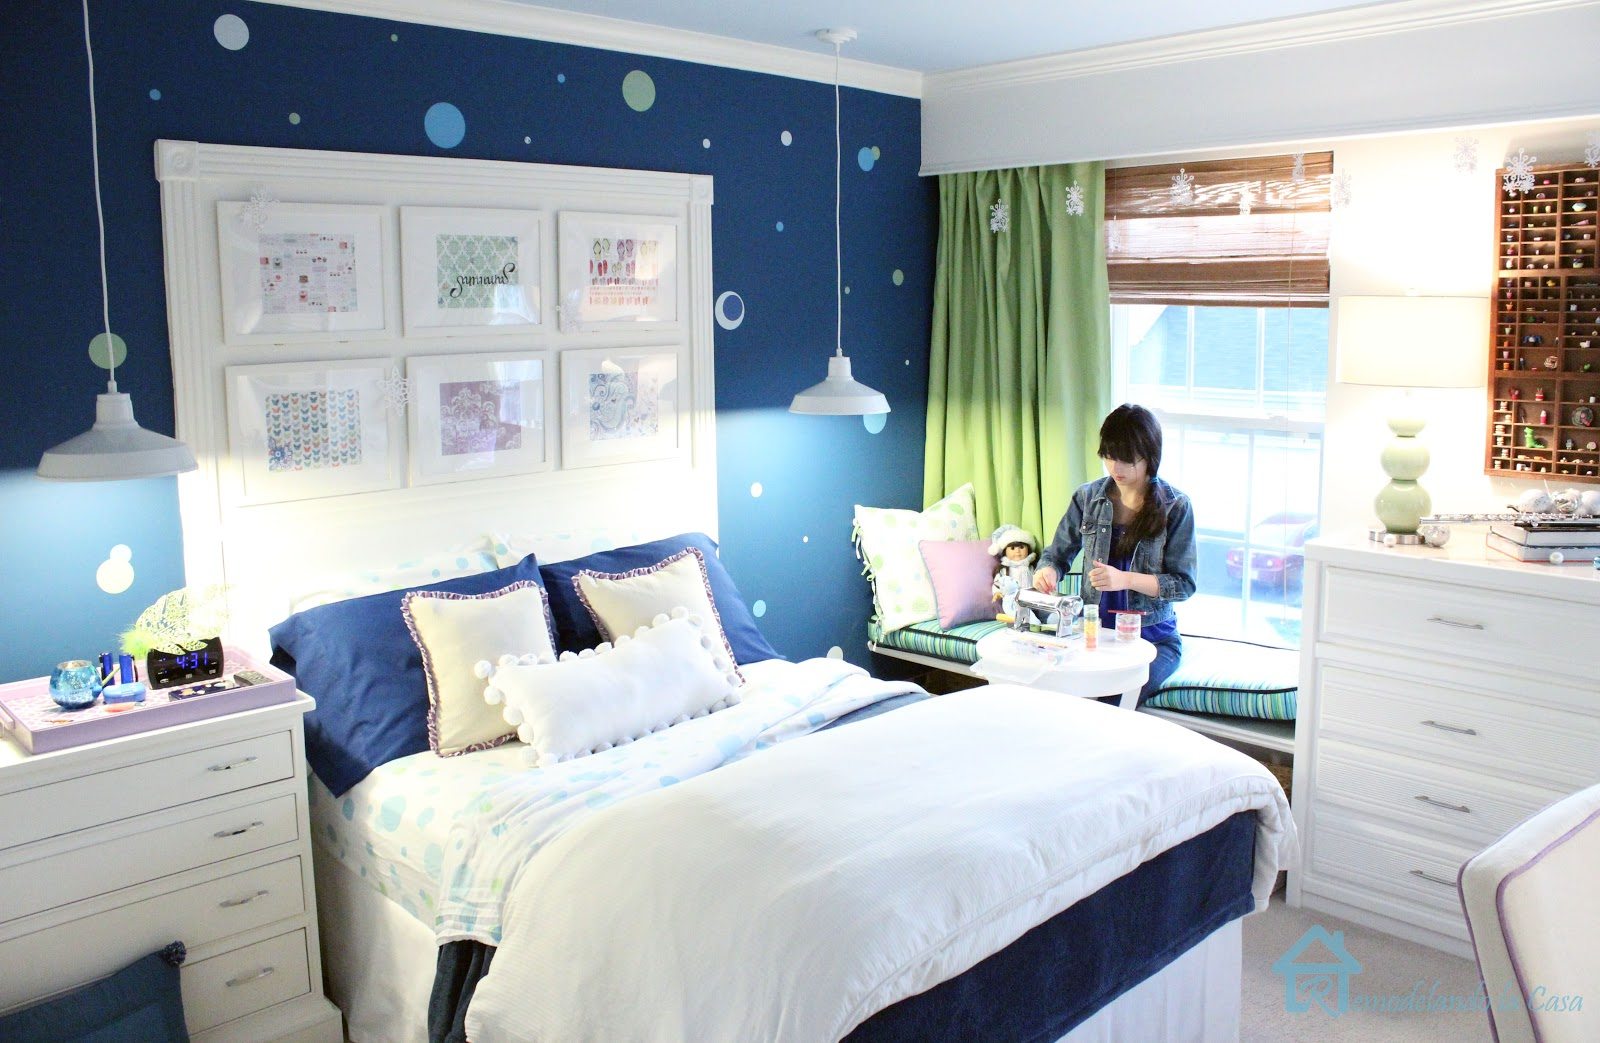 Remodelando la casa changes coming for boy 39 s room for Blue teenage bedroom ideas